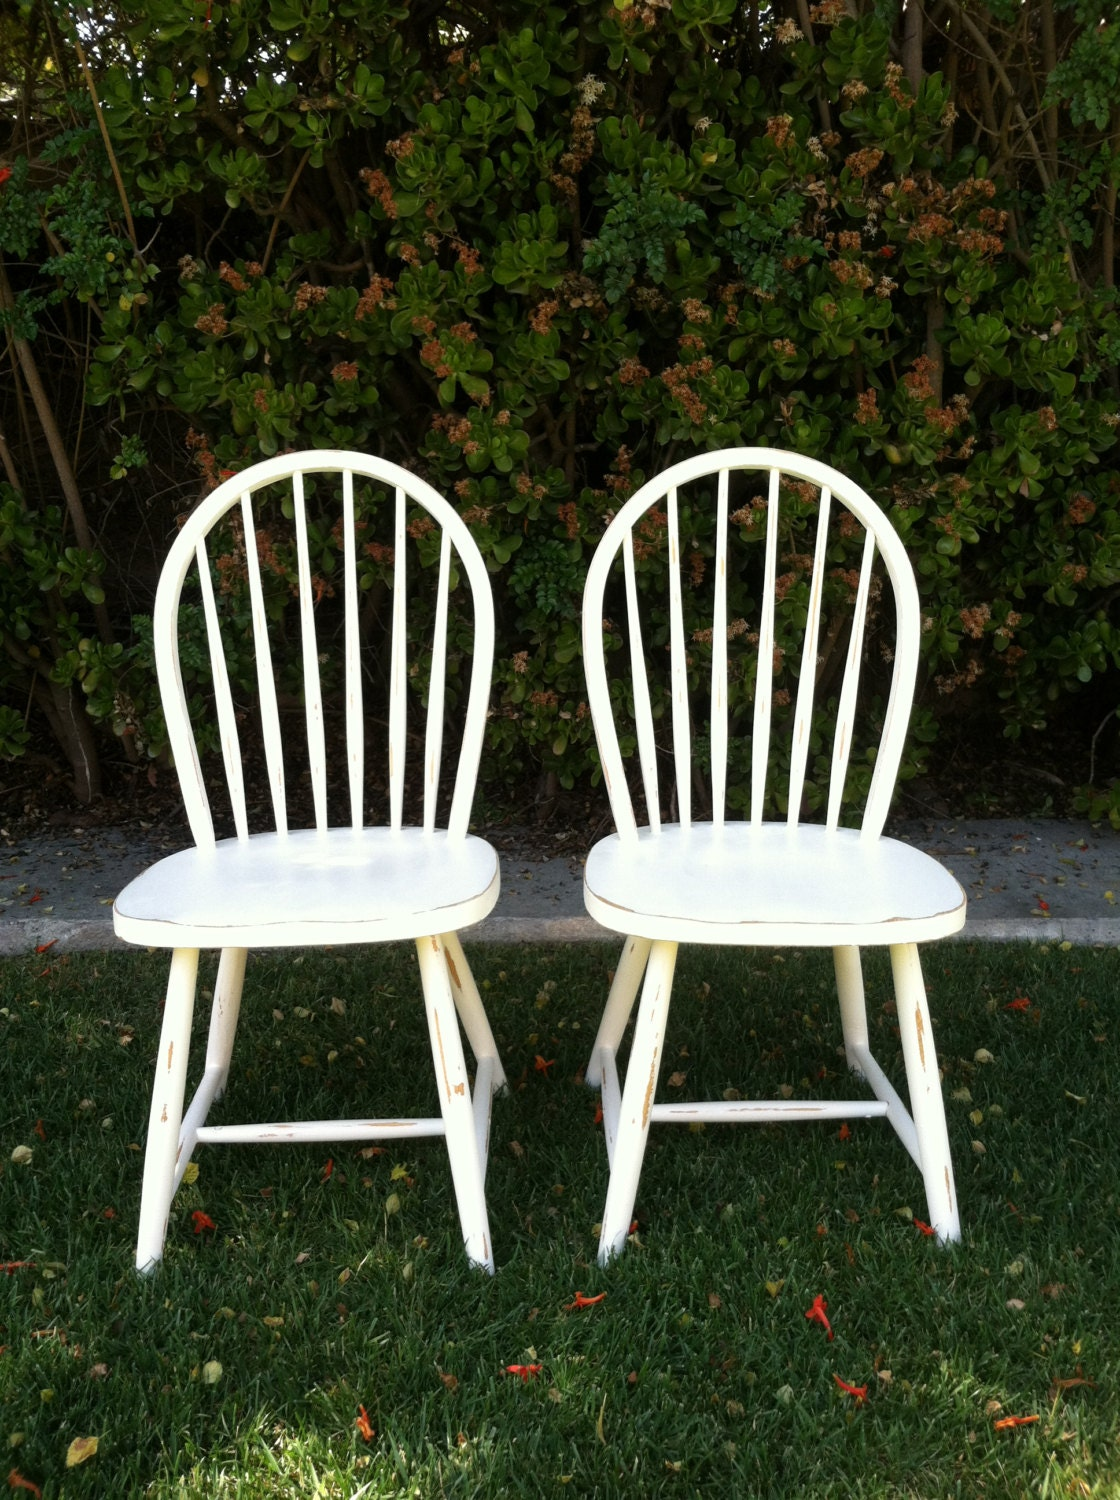 Set of 6 Shabby Chic White Chairs Distressed by ThePaintedLdy : il570xN438013506a7mc from www.etsy.com size 570 x 763 jpeg 150kB